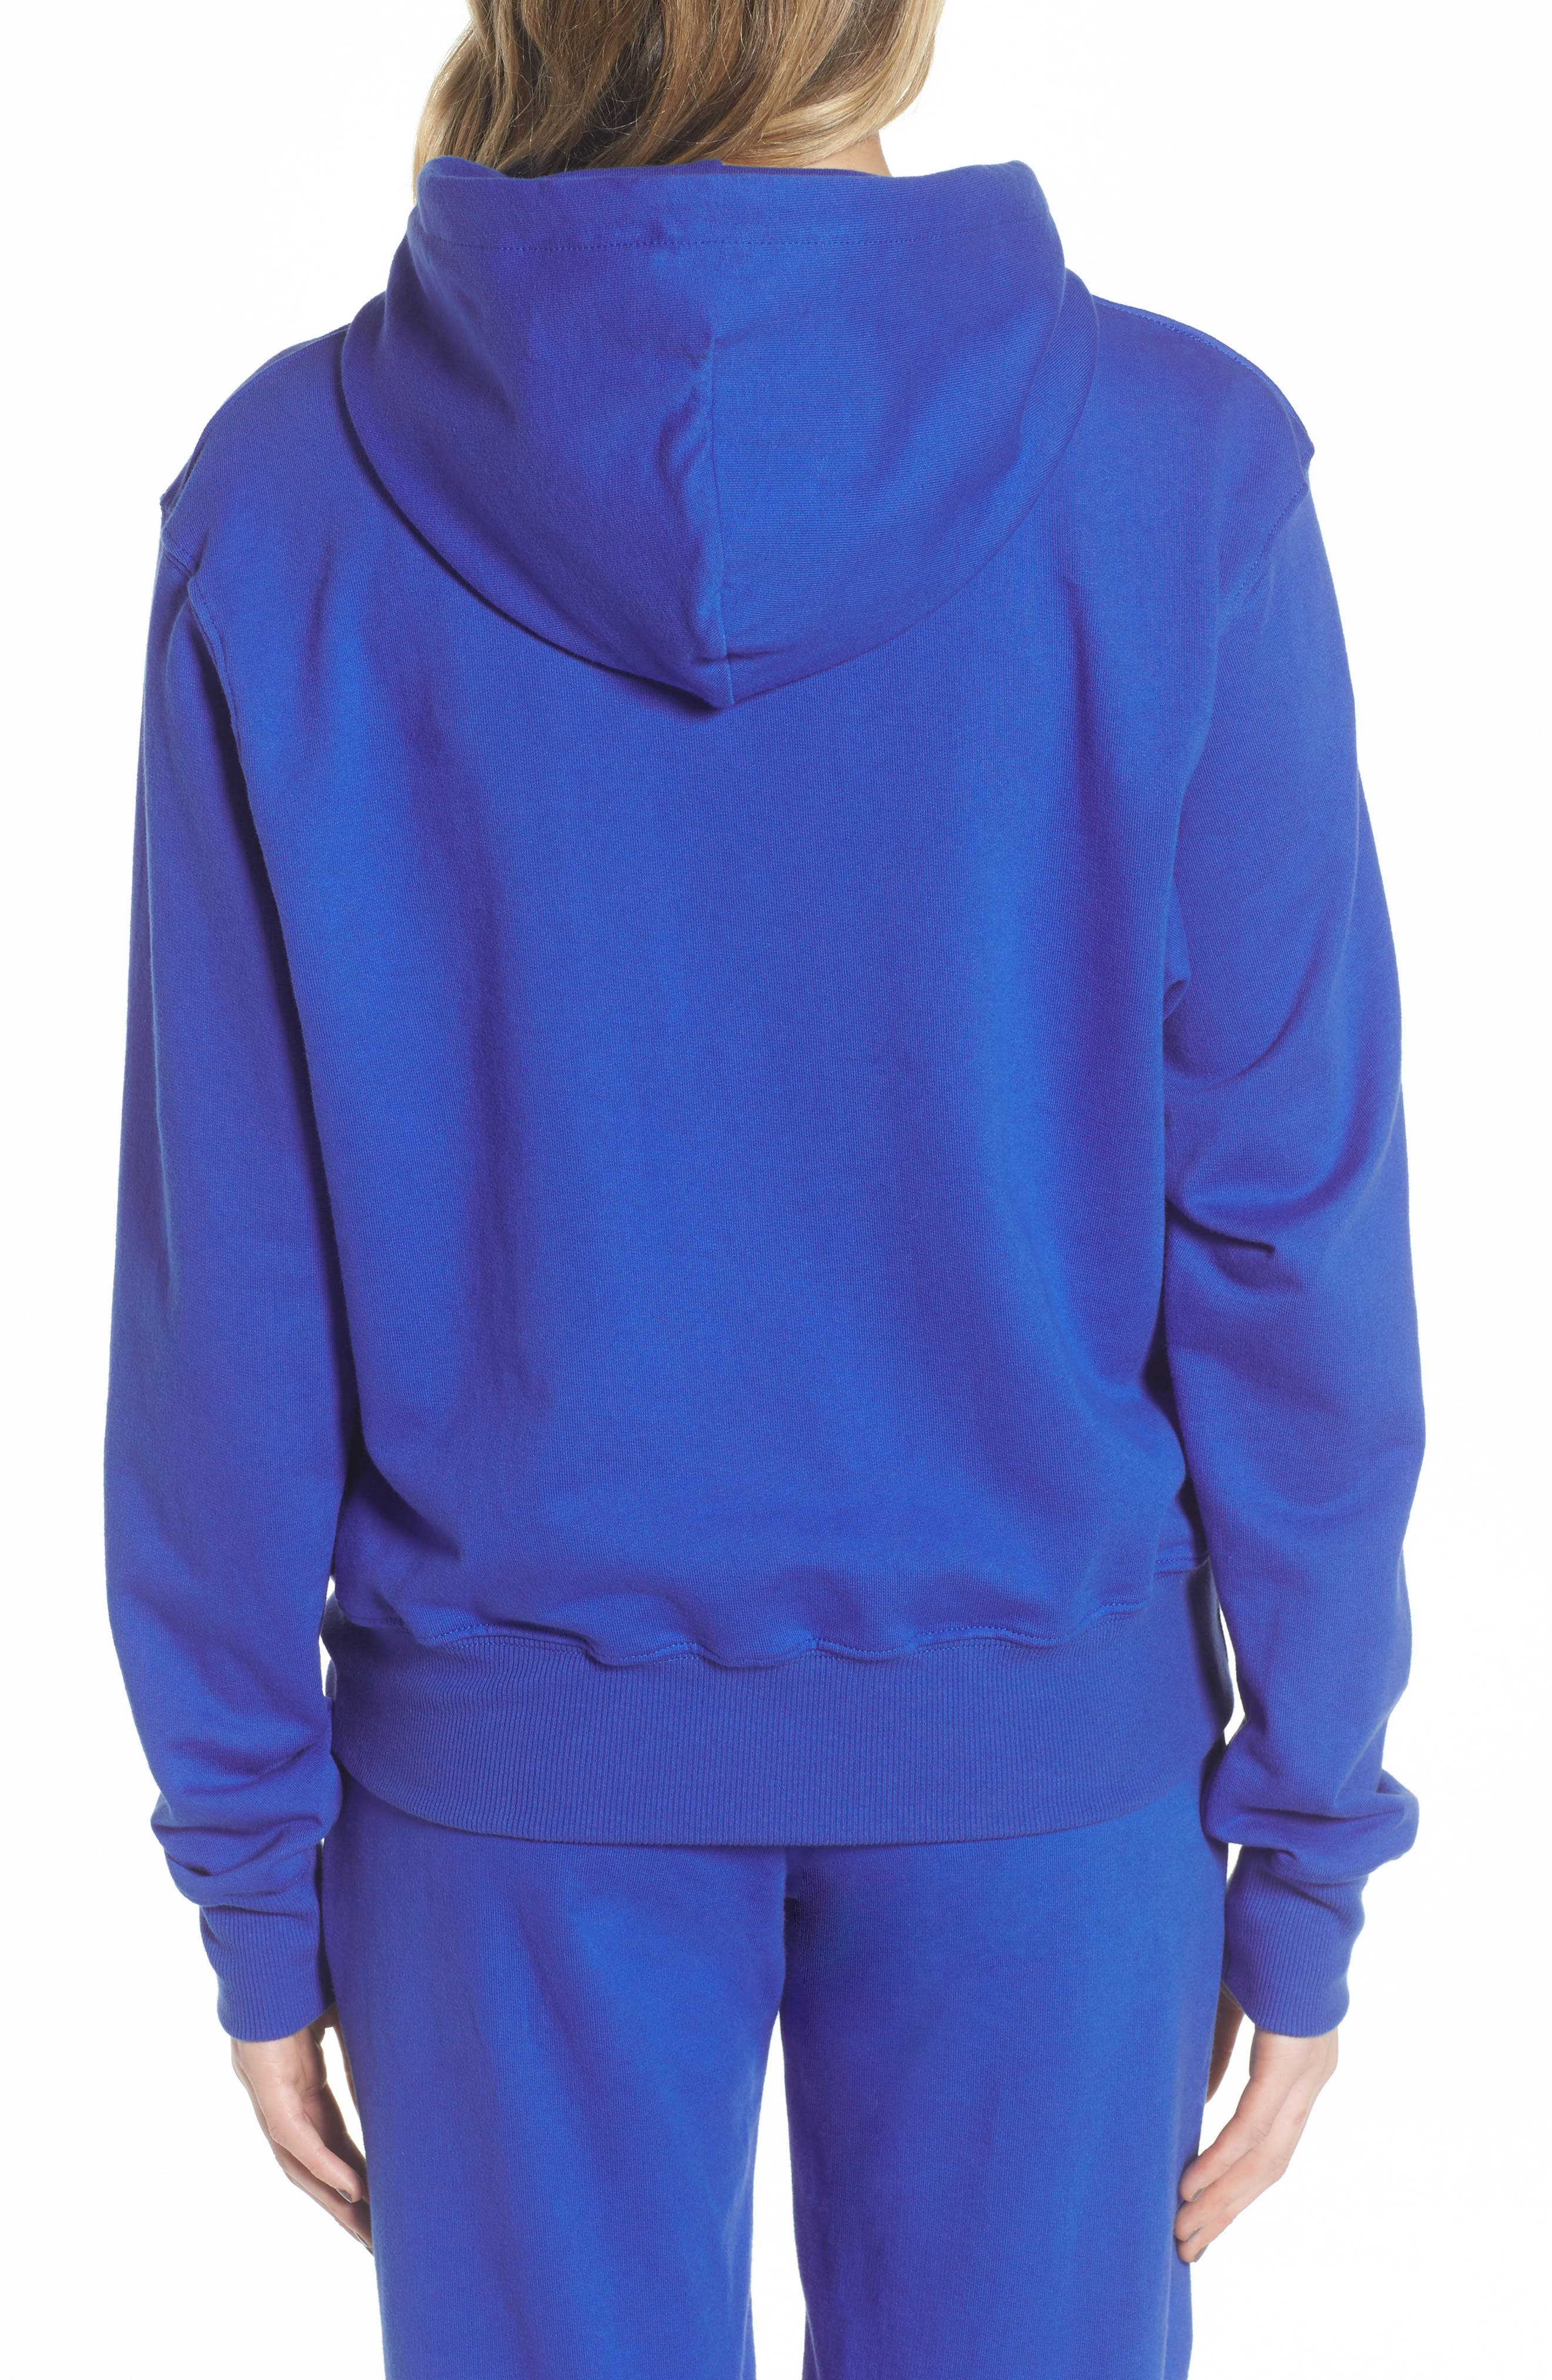 MELODY EHSANI,                             ME. Rose Pullover Hoodie,                             Alternate thumbnail 3, color,                             400